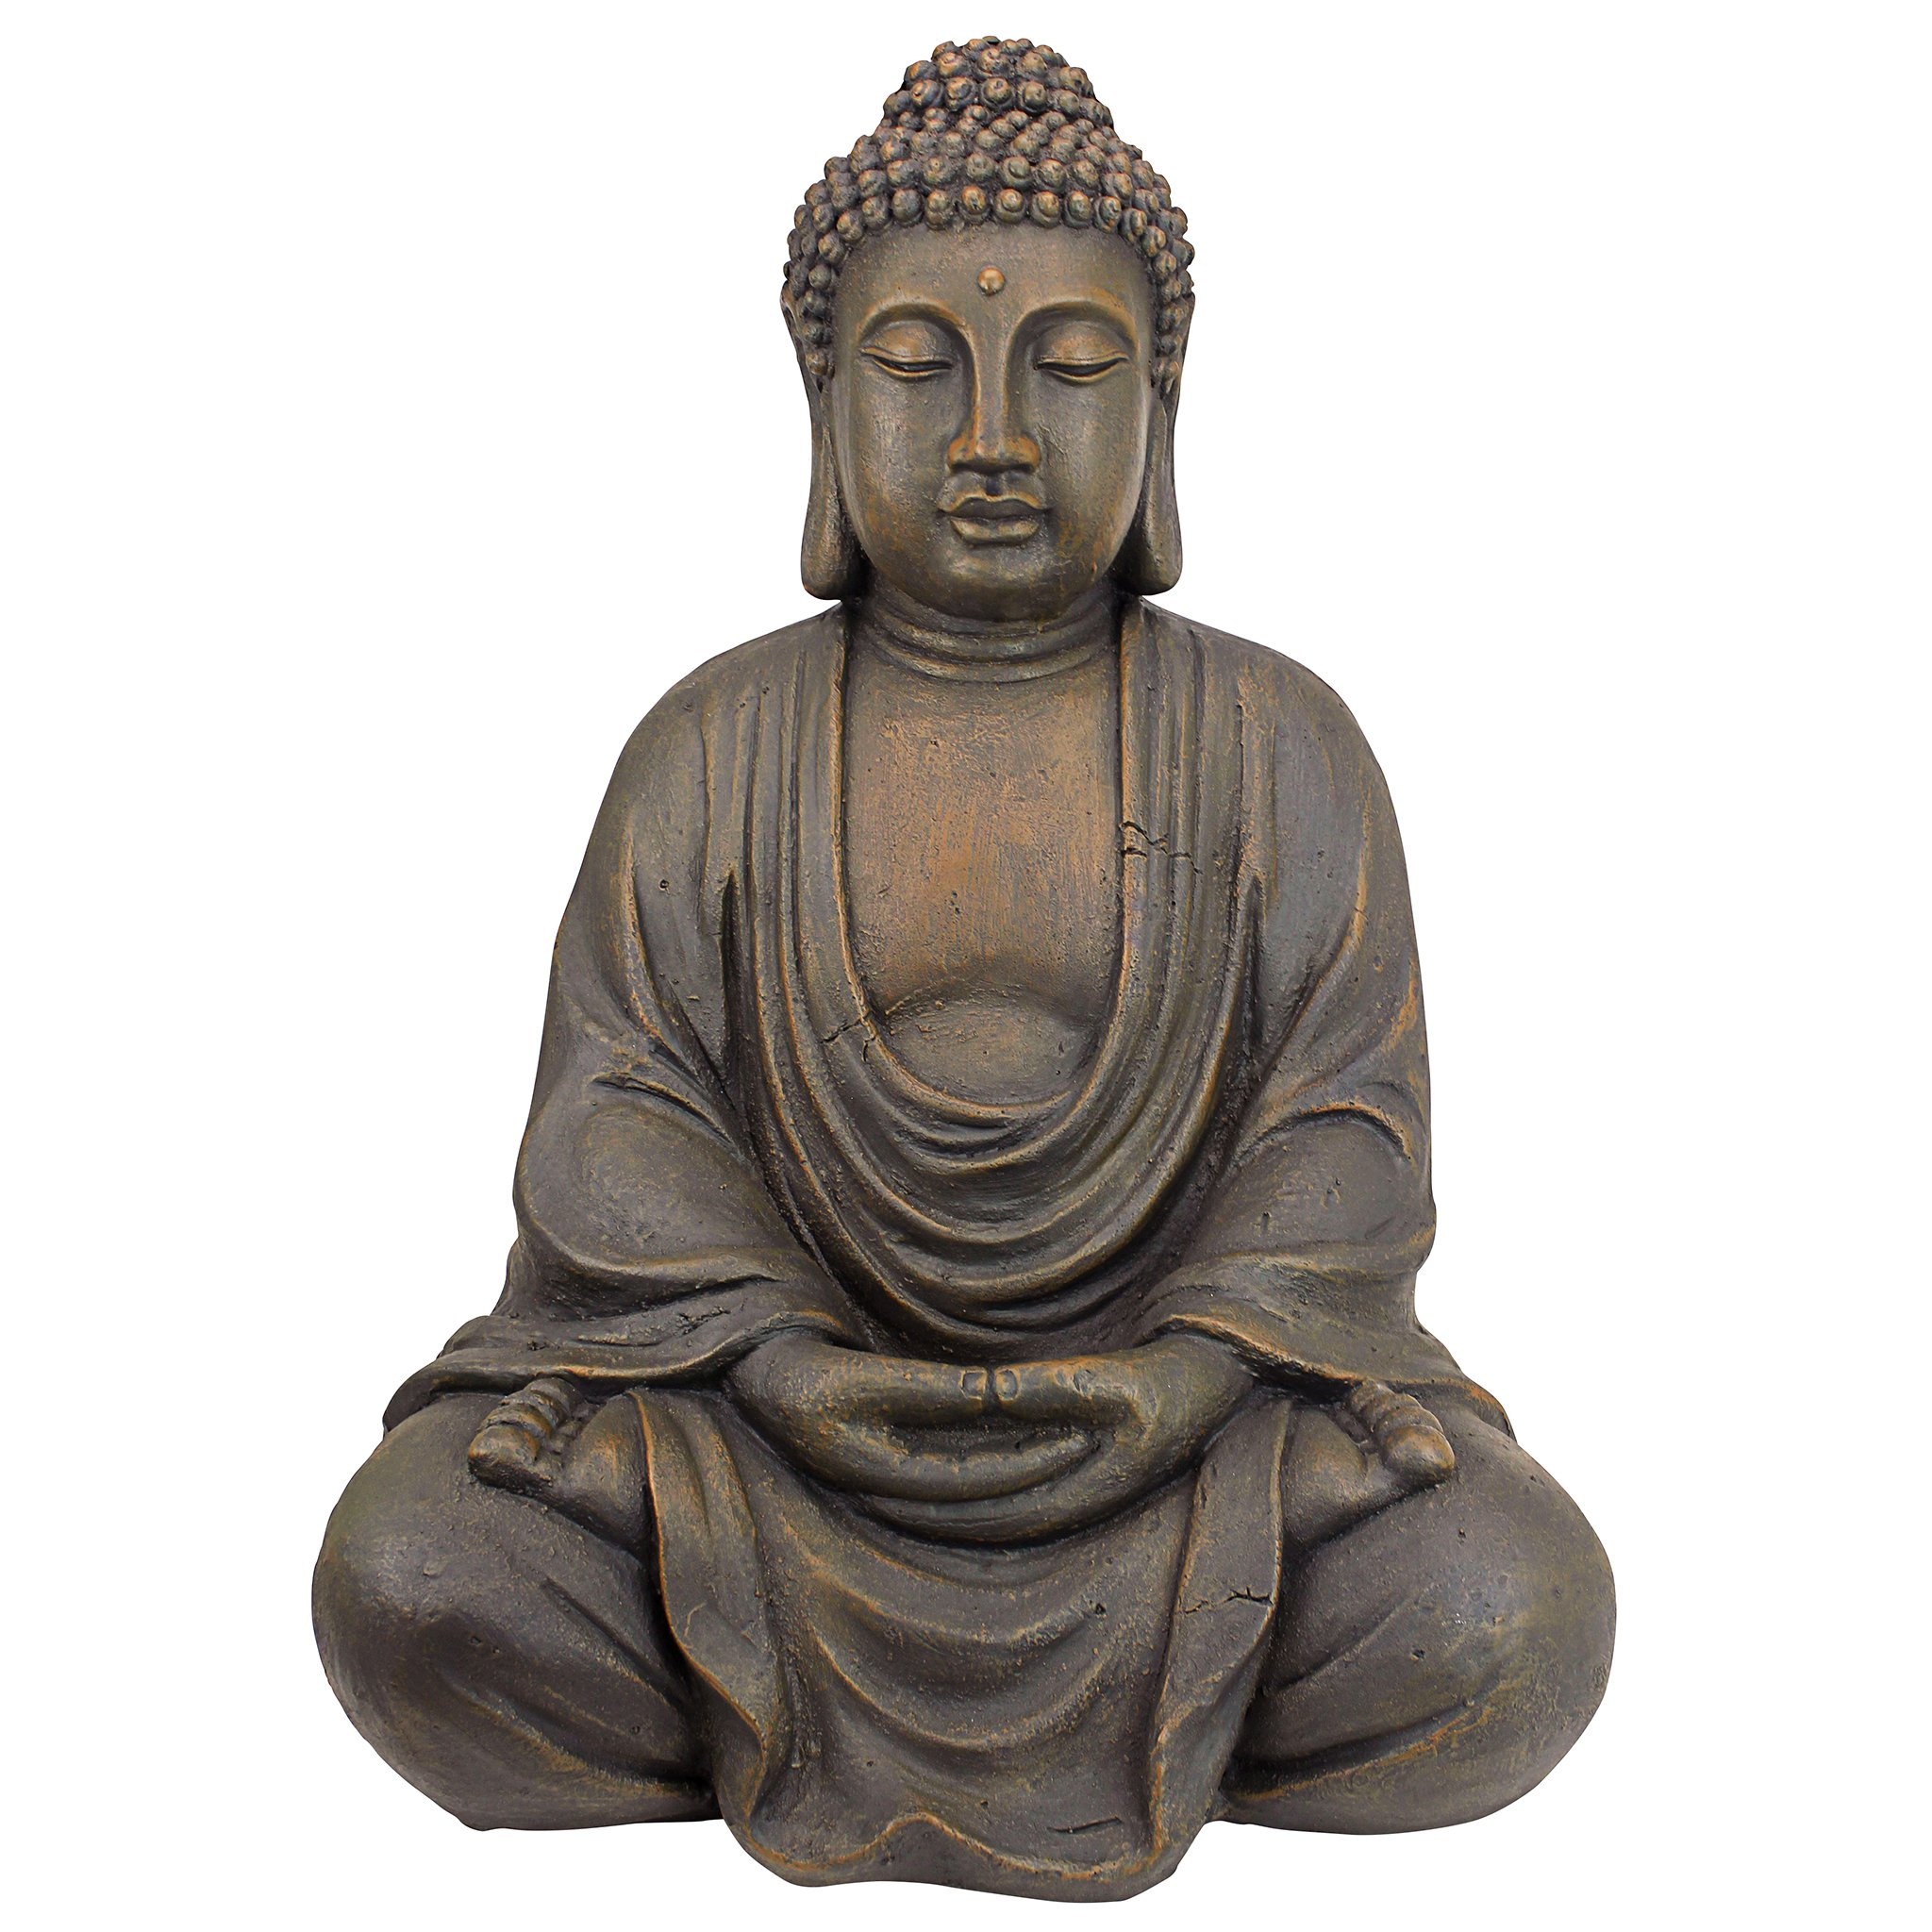 Design Toscano Meditative Buddha of the Grand Temple Garden Statue, Medium 26 Inch, Polyresin, Dark Stone by Design Toscano